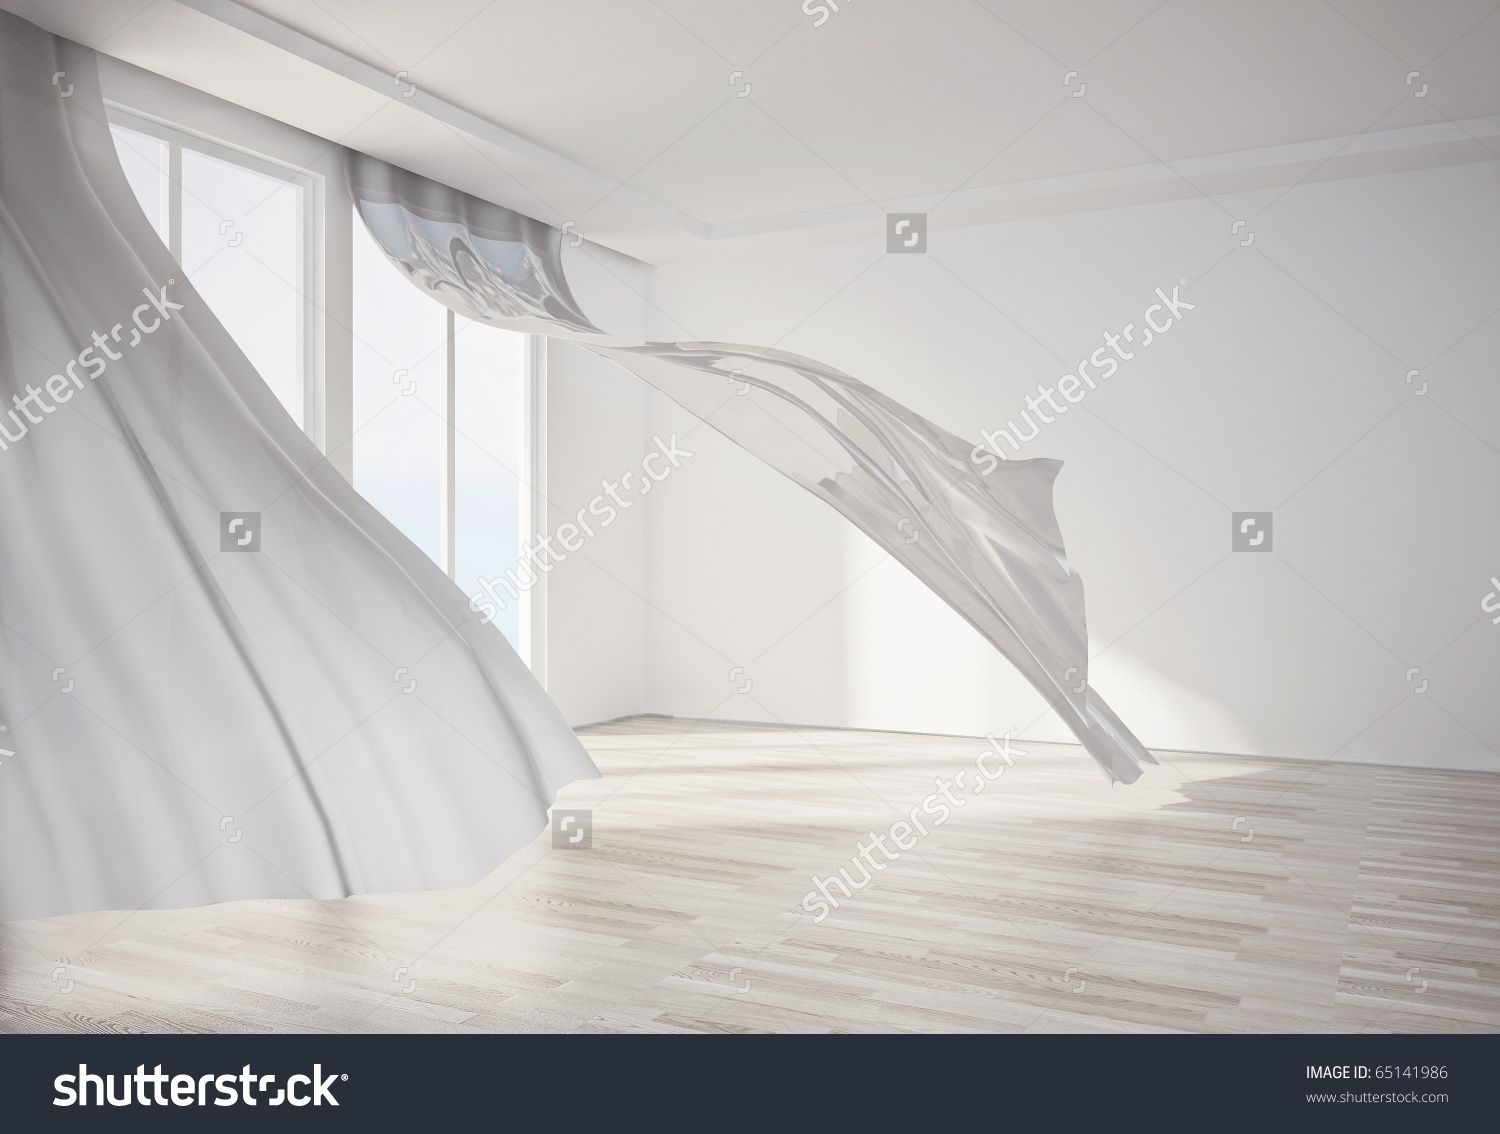 interior room with white flowing curtains 3D render art window